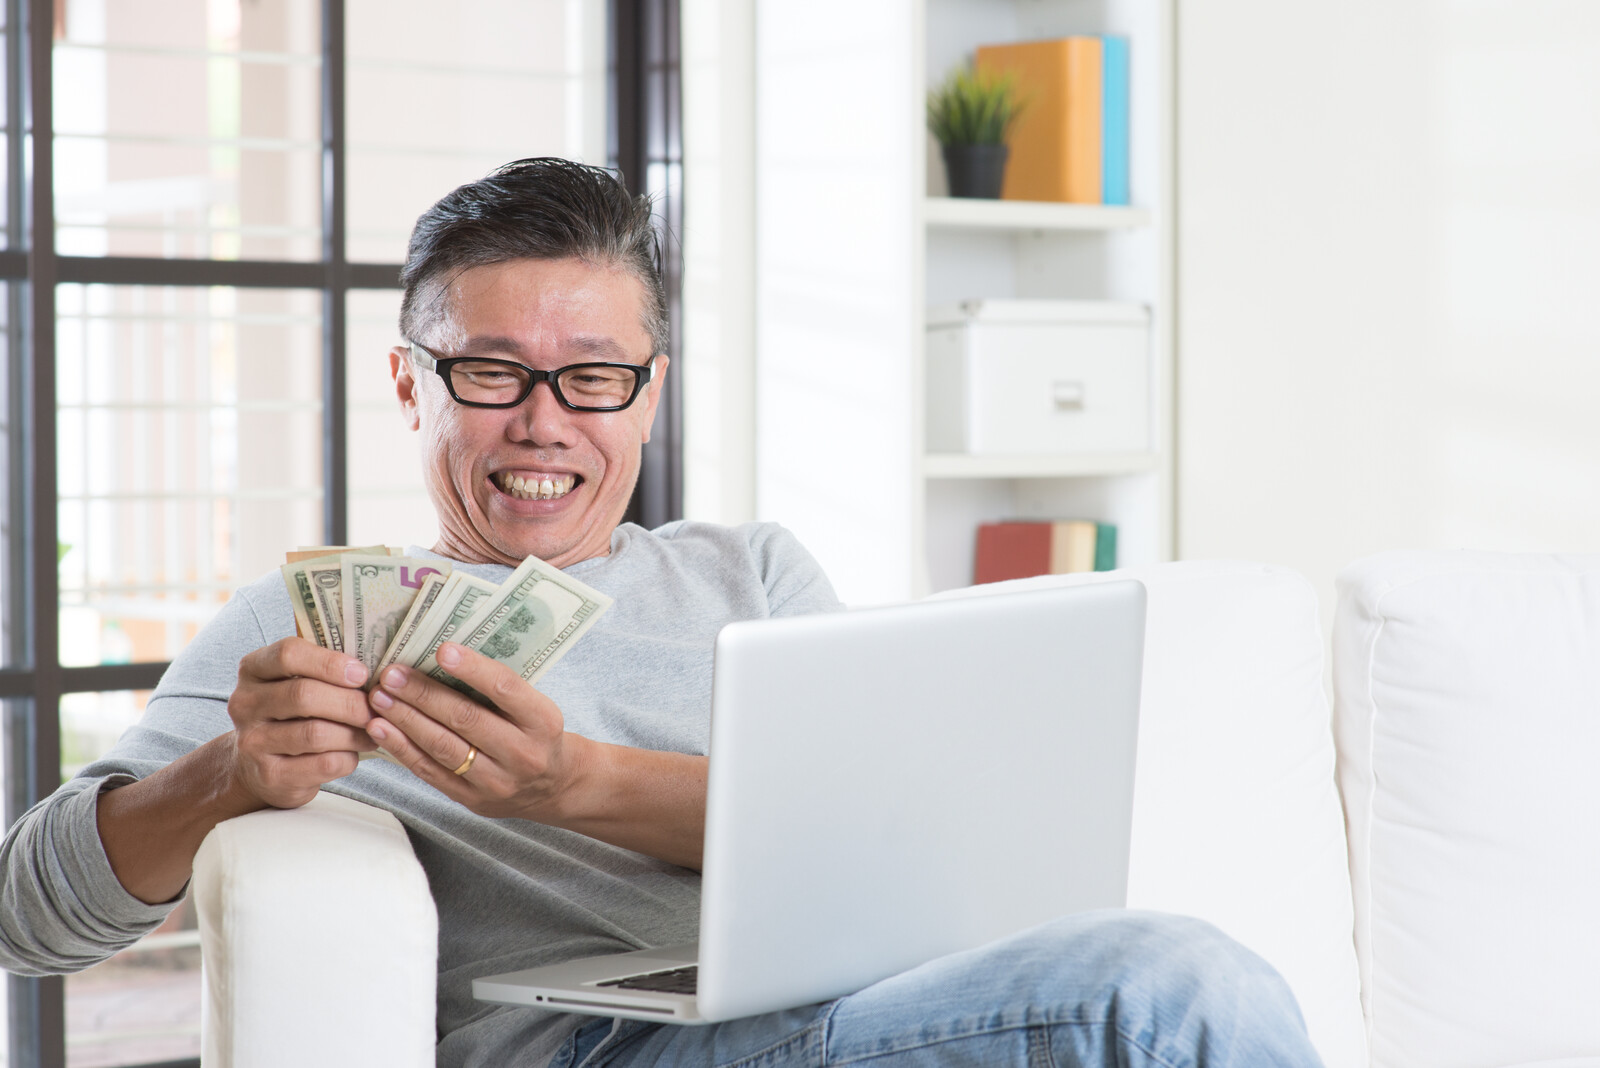 Work-From-Home Scams Targeting Seniors - Man counting cash smiling while sitting on the couch with his lap top